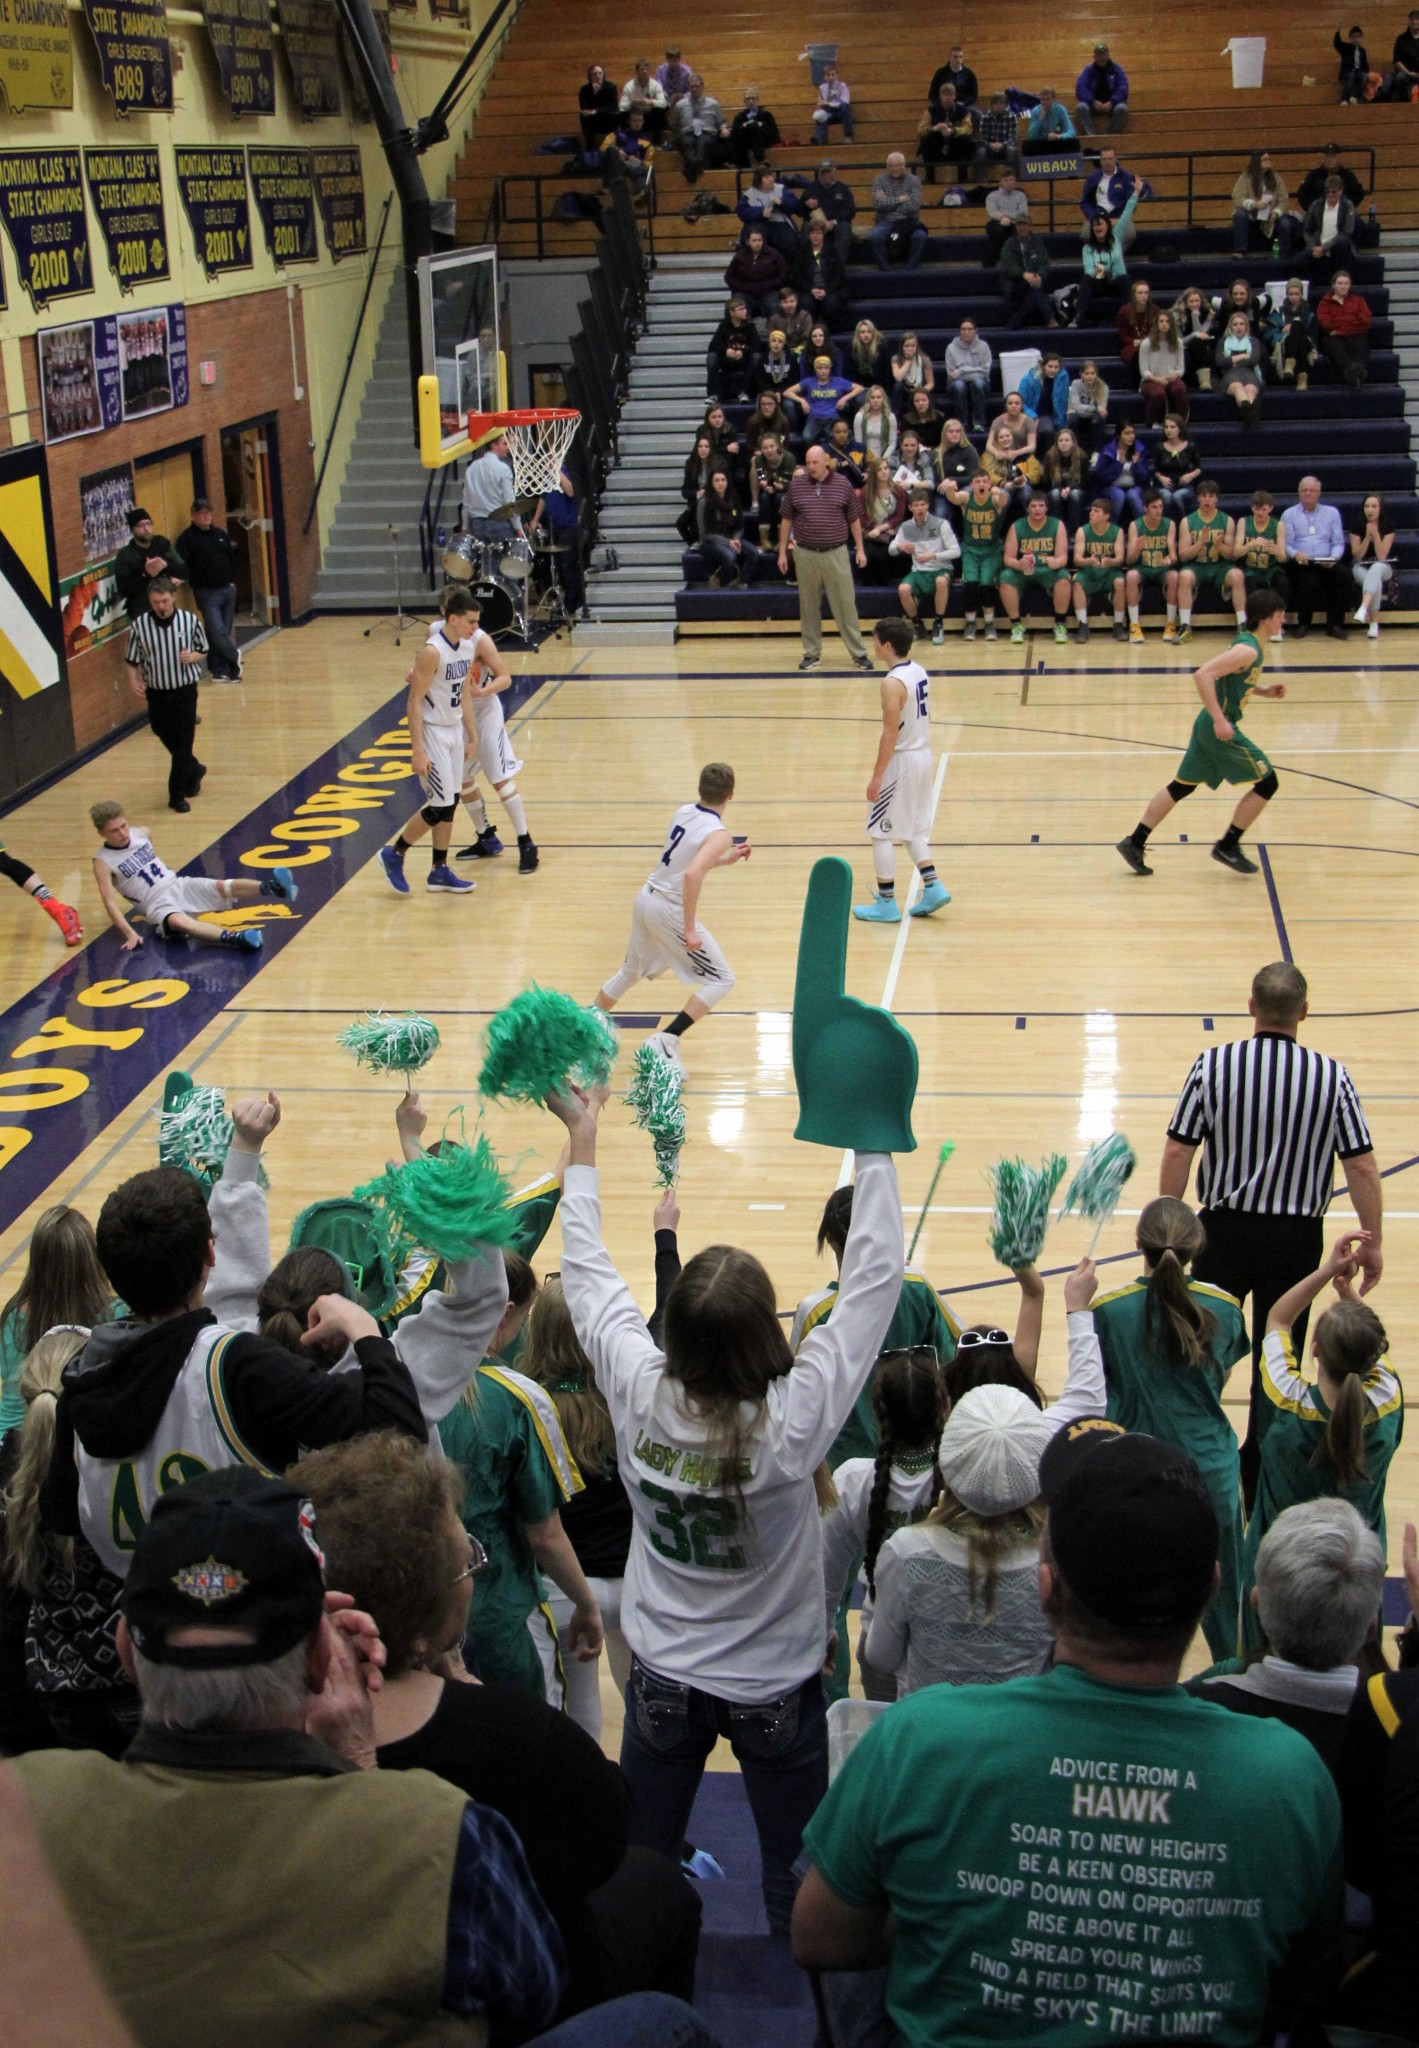 A lot of fans proclaimed their team to be No. 1, but that won't be known until Saturday when the championship games are scheduled at 6 and 8 p.m. at Custer County District High School in Miles City. The top four teams in both the boys and girls divisions advance to the Southern C tournament — the boys next week in Laurel and the girls here in Miles City from March 1-3.STAR PHOTO/Sharon Moore